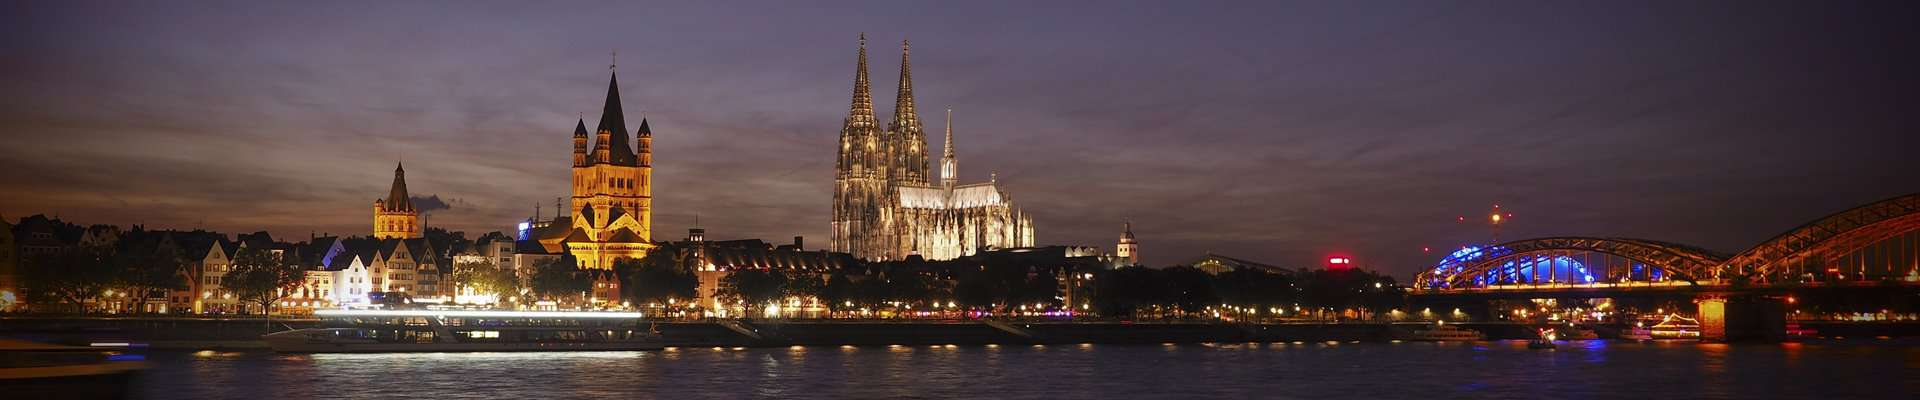 The Cologne skyline at night showing the Gothic Cathedral.